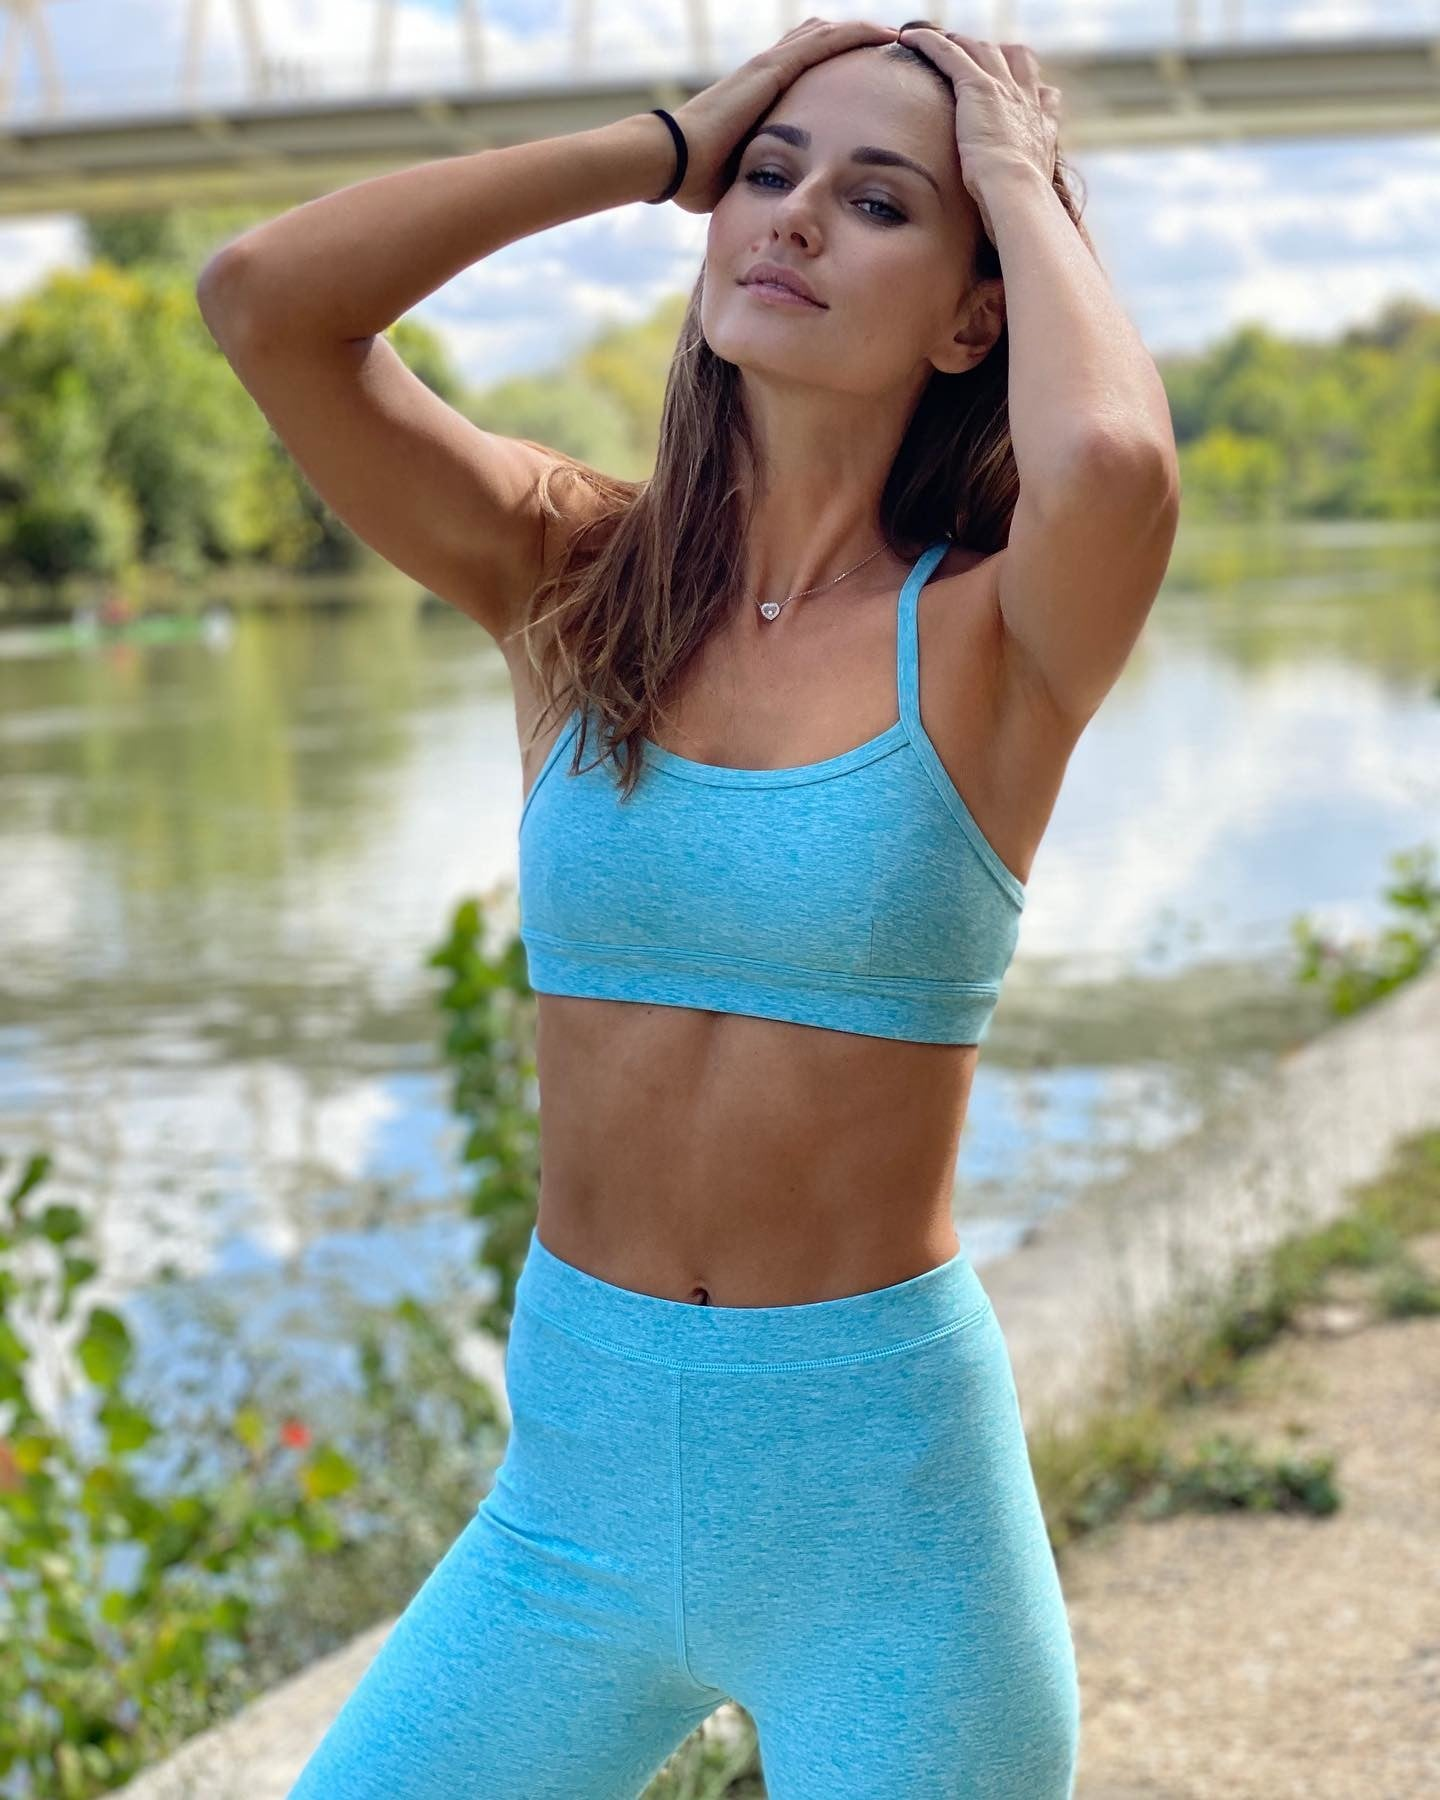 @annasafroncik wearing a matching turquoise sports bra with high-waisted yoga pants while walking alongside the river.